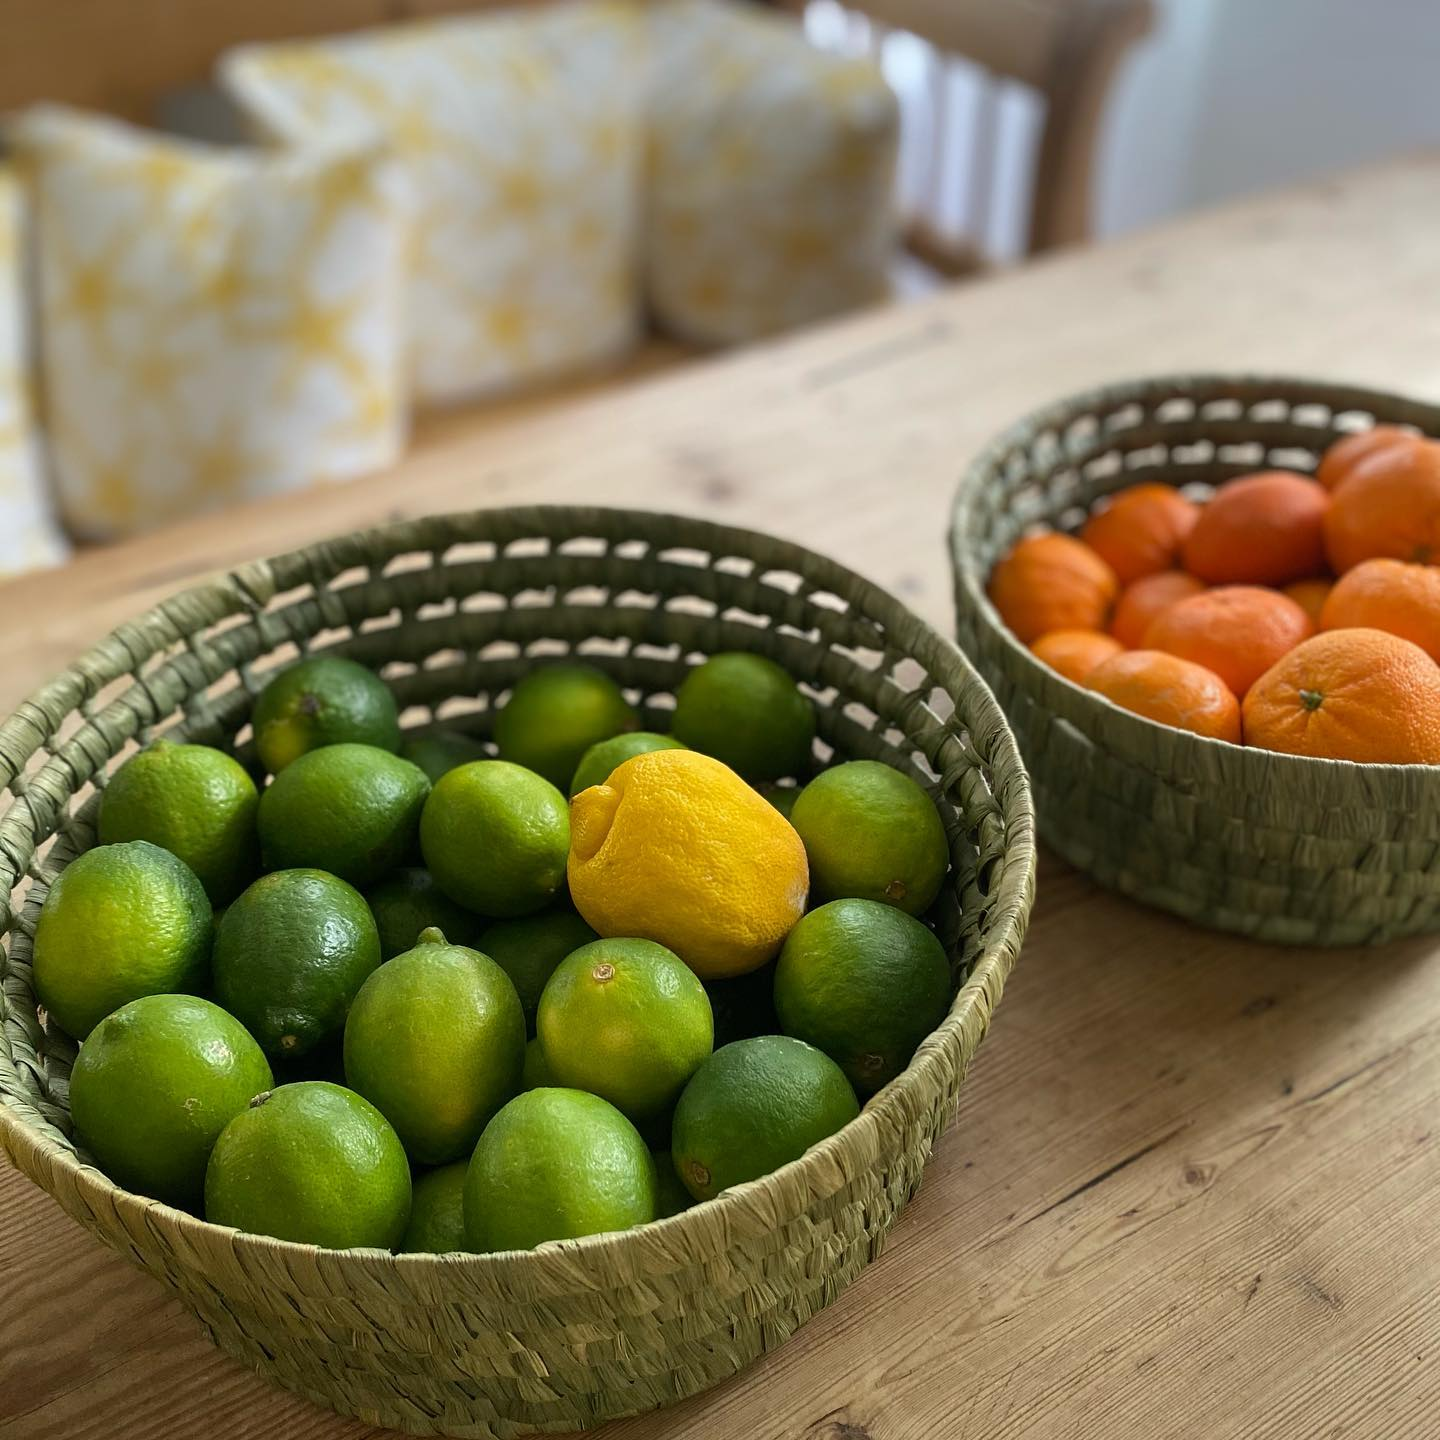 Mermaid Cottages invites you to experience the fruits of our labor